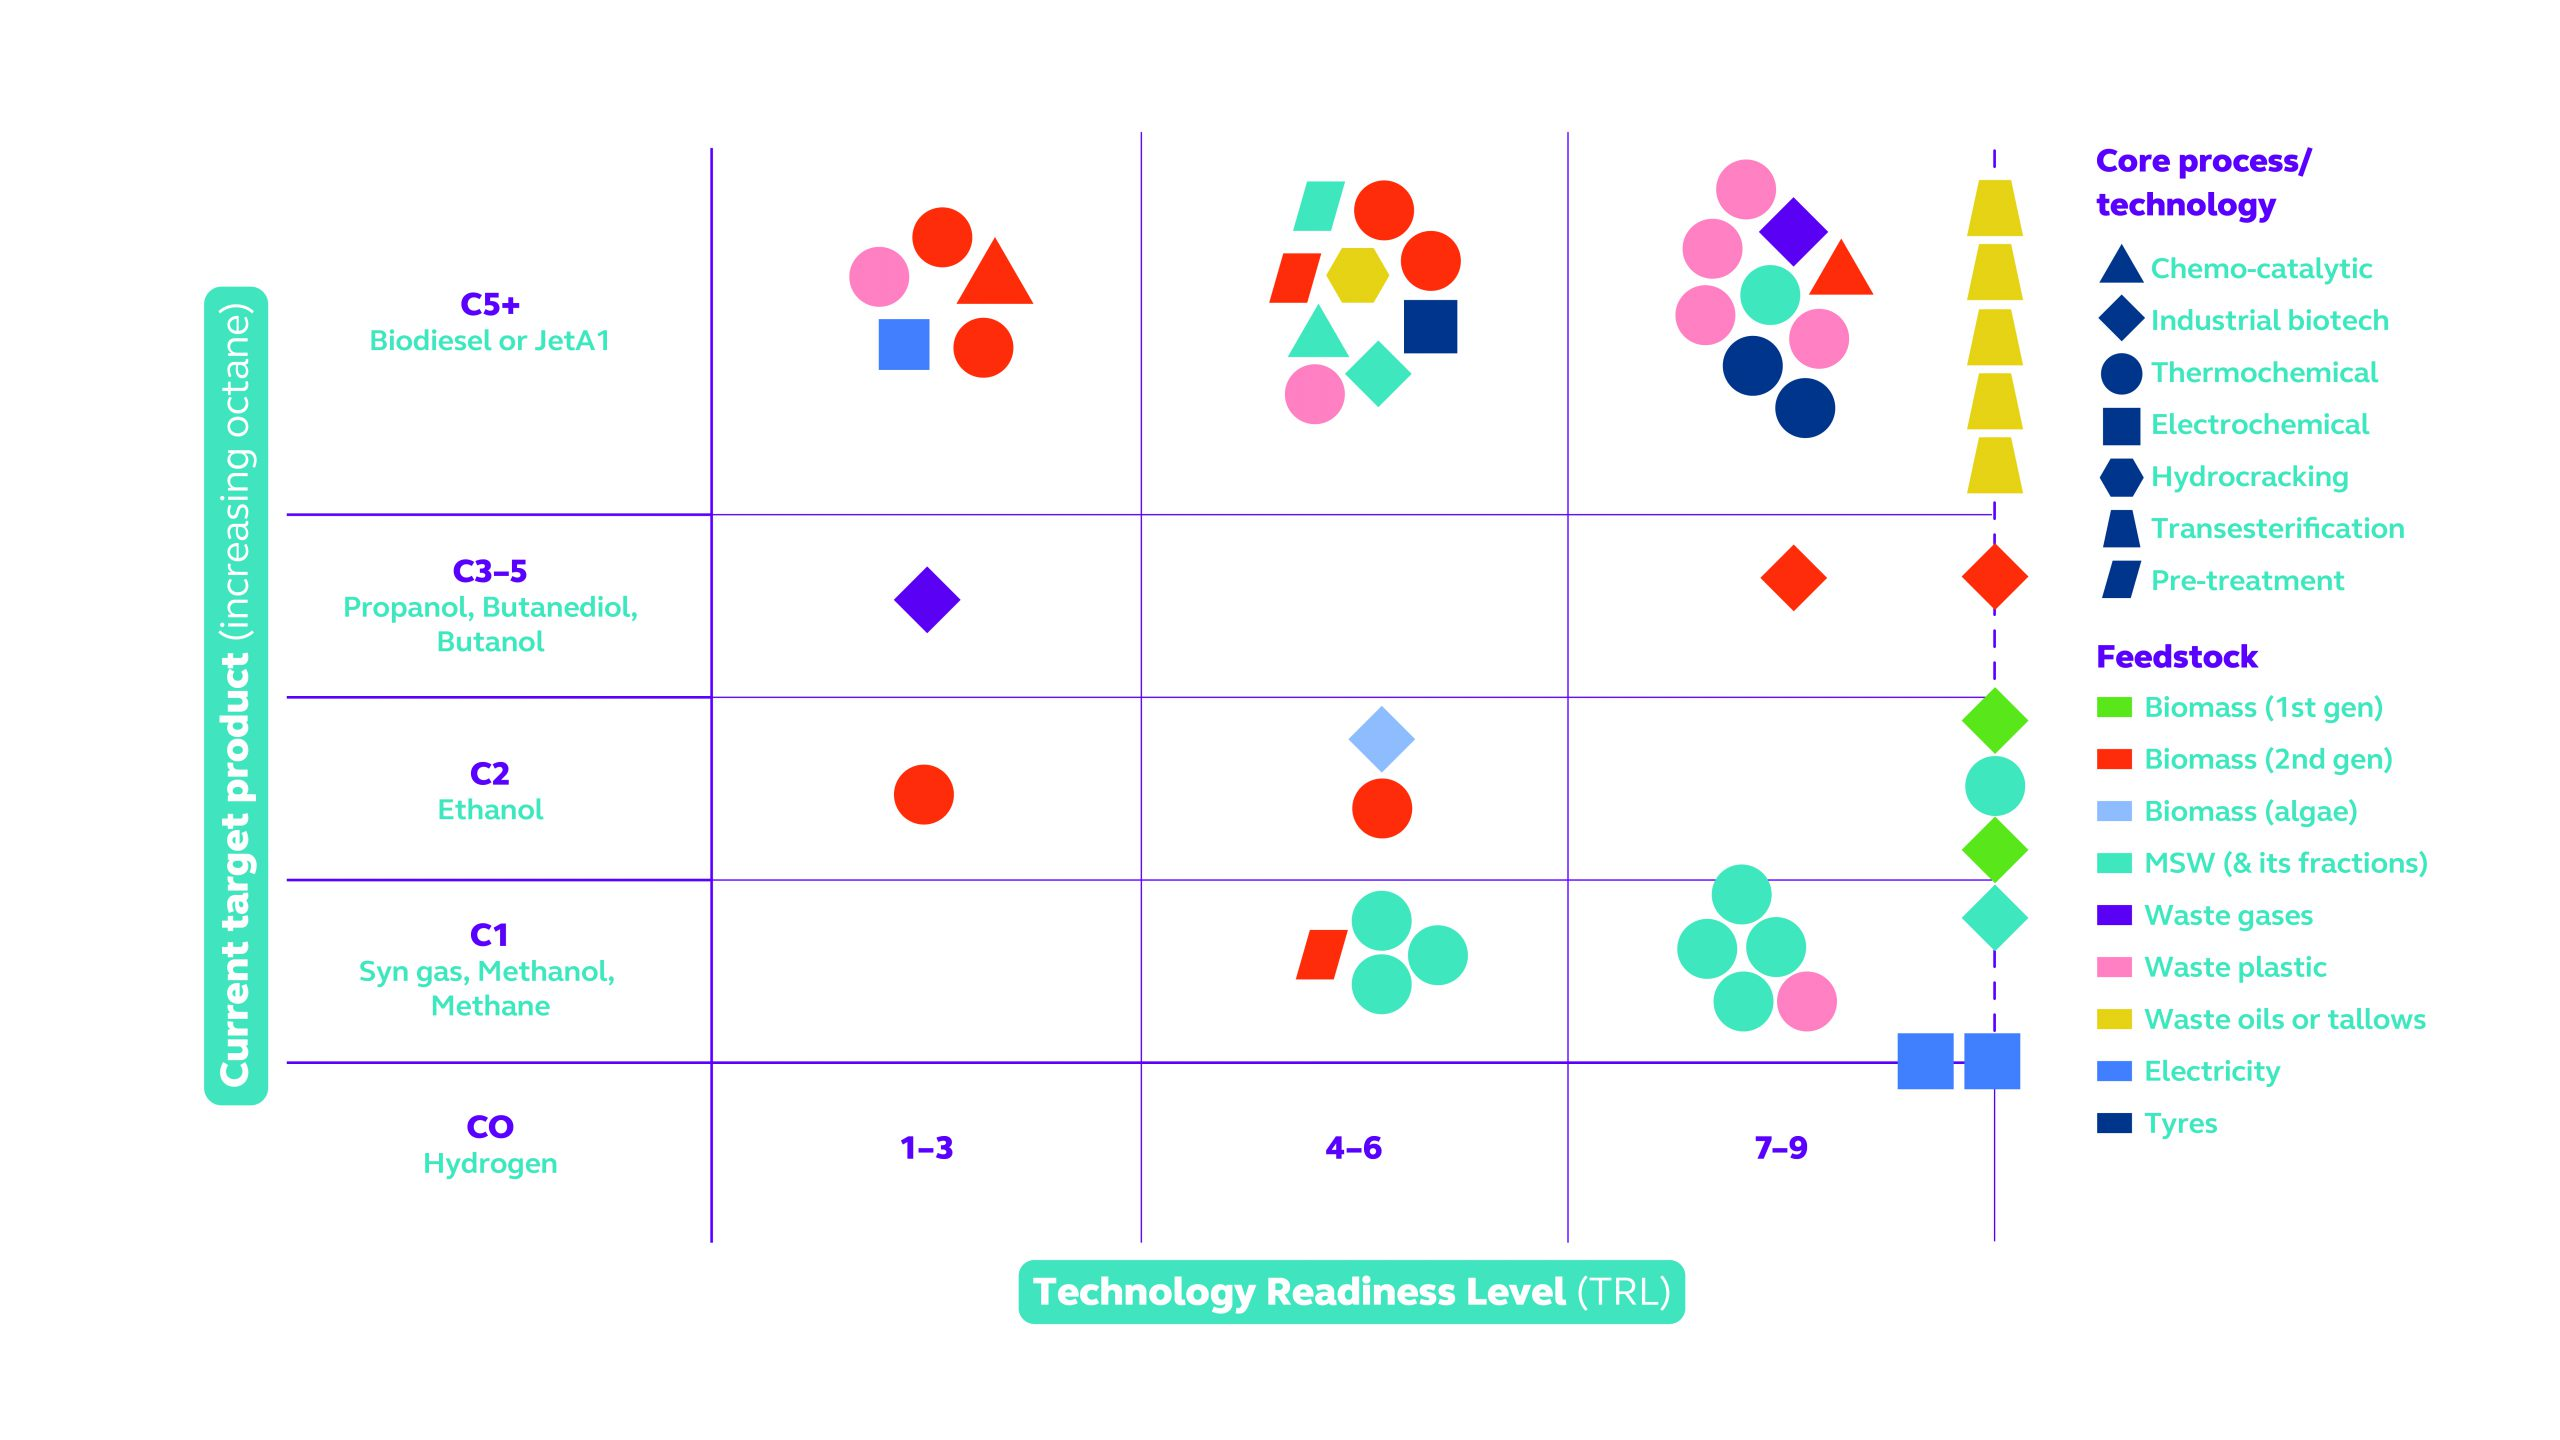 Figure 1: Matrix to illustrate the current target product, feedstock, technology utilised, and TRL of 49 UK organisations.